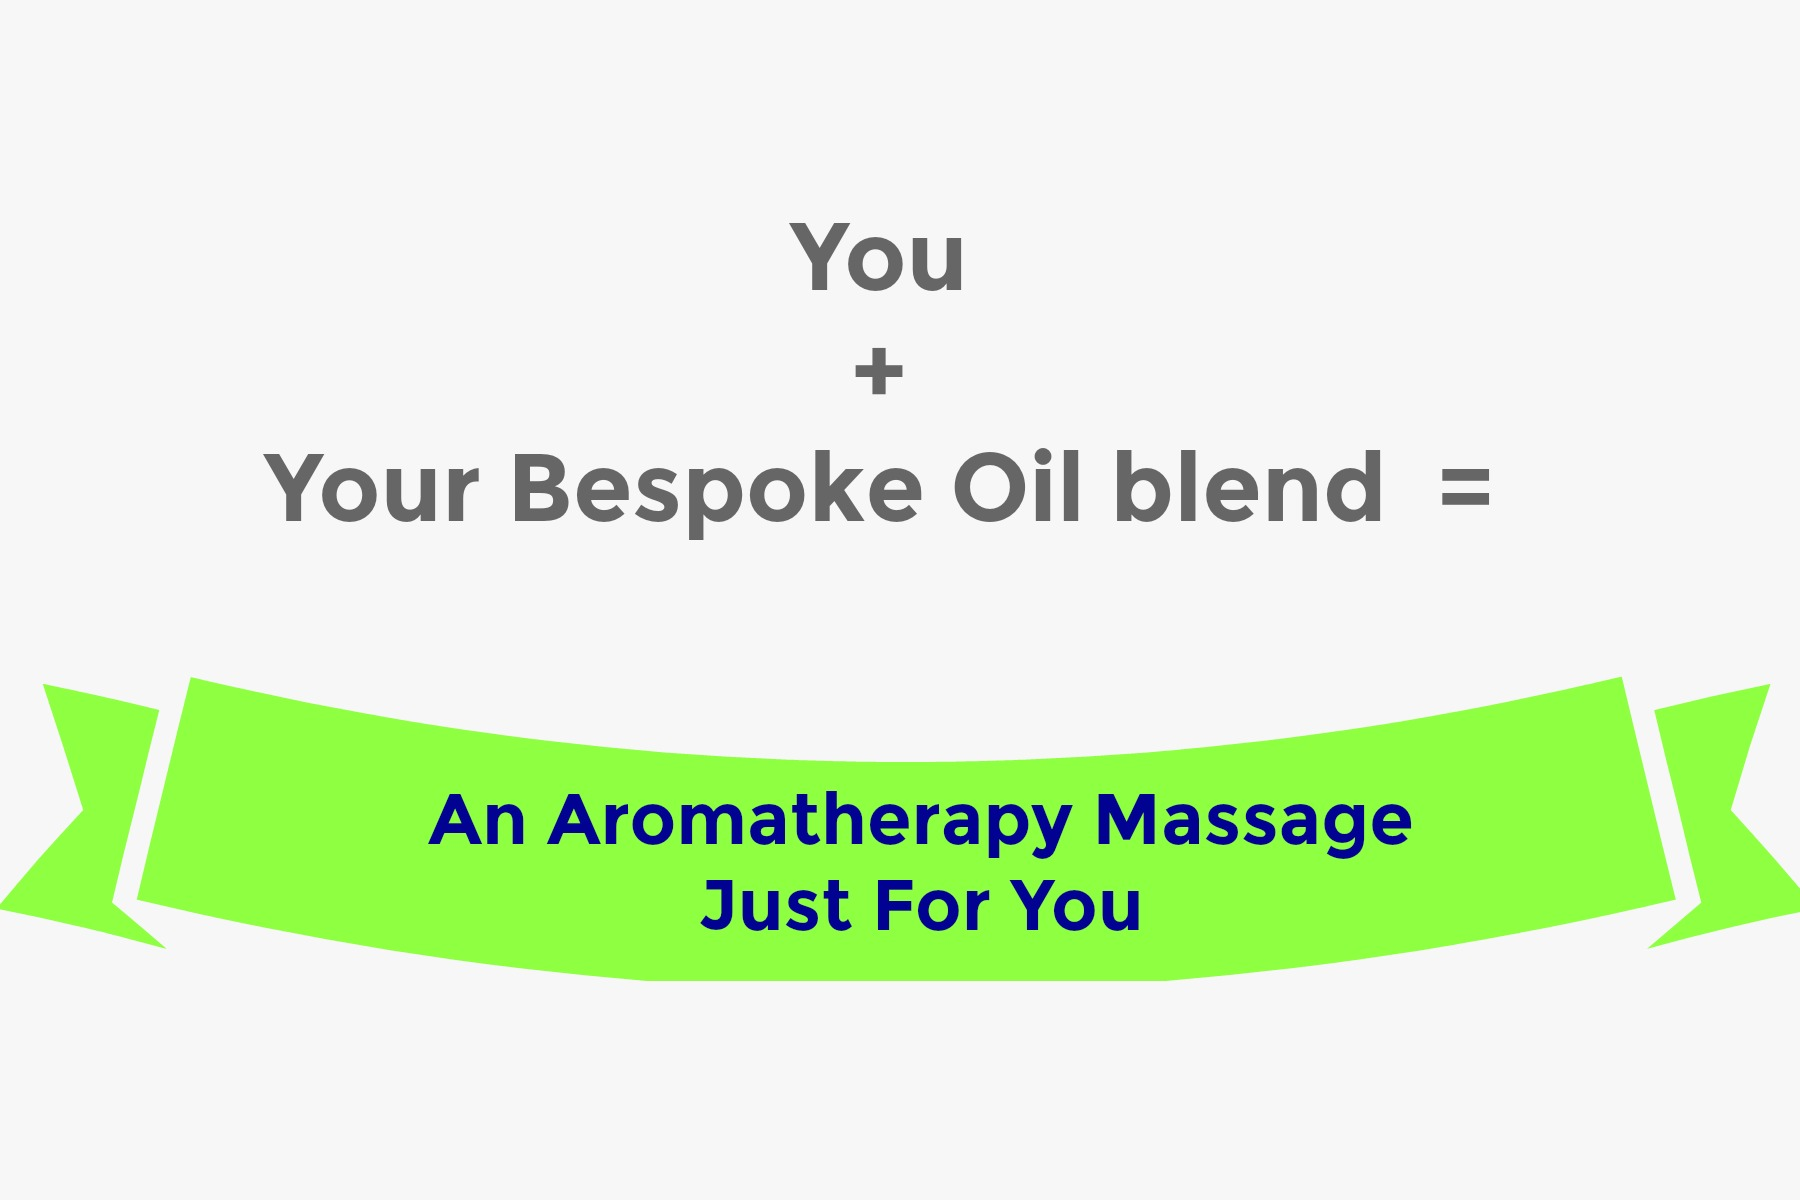 bespoke aromatherapy massage blends